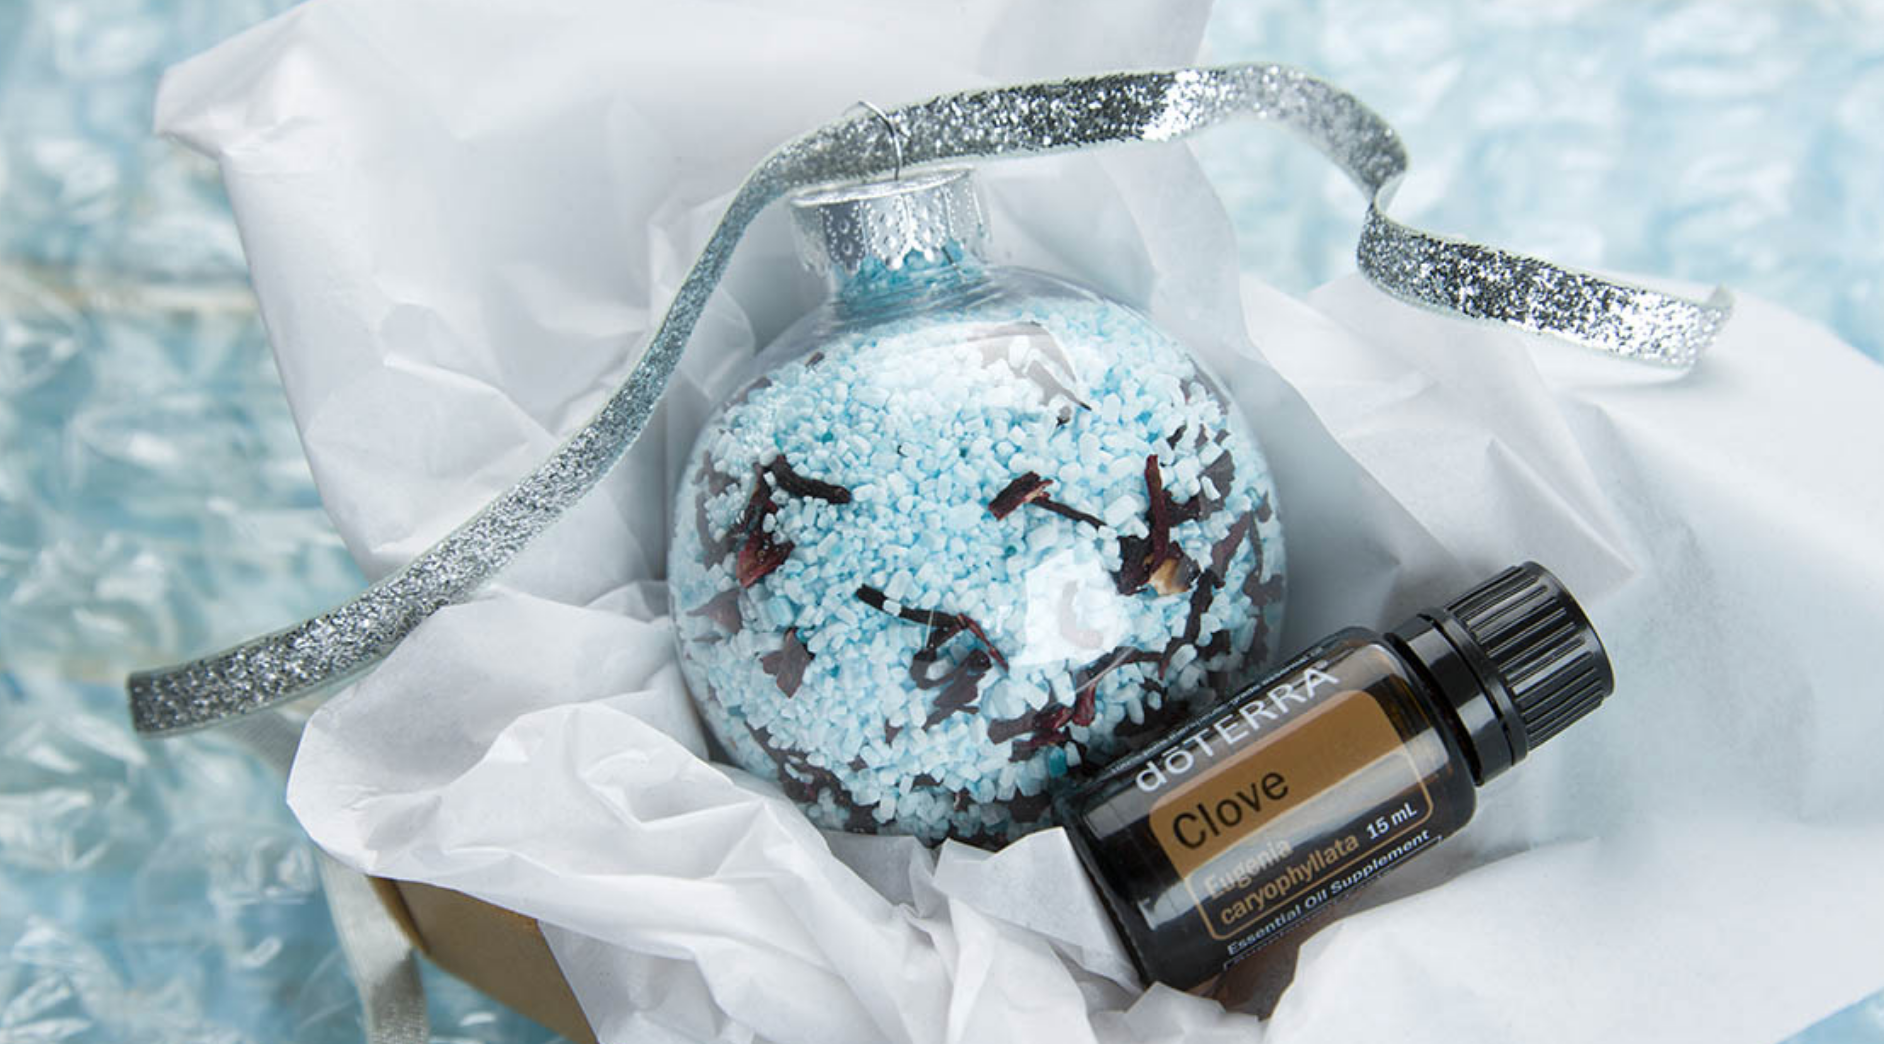 DIY – Holiday Bath Salt Ornaments